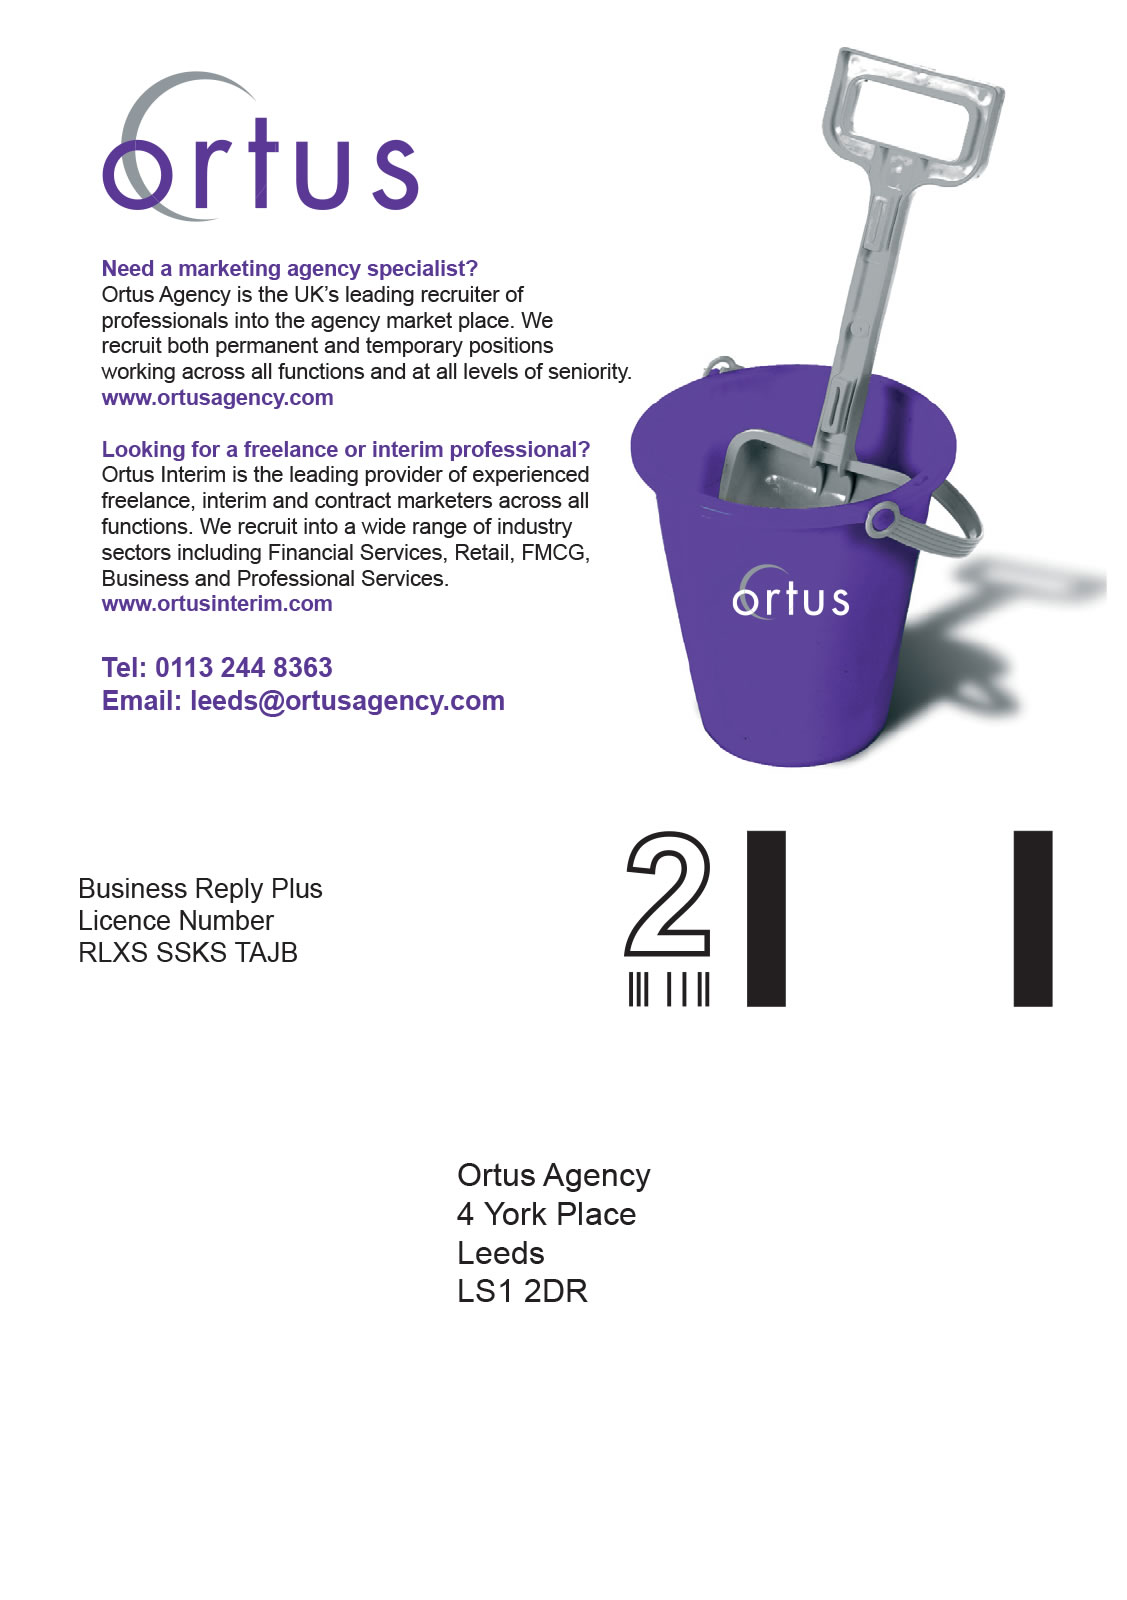 Ortus - Direct mail - Side 2